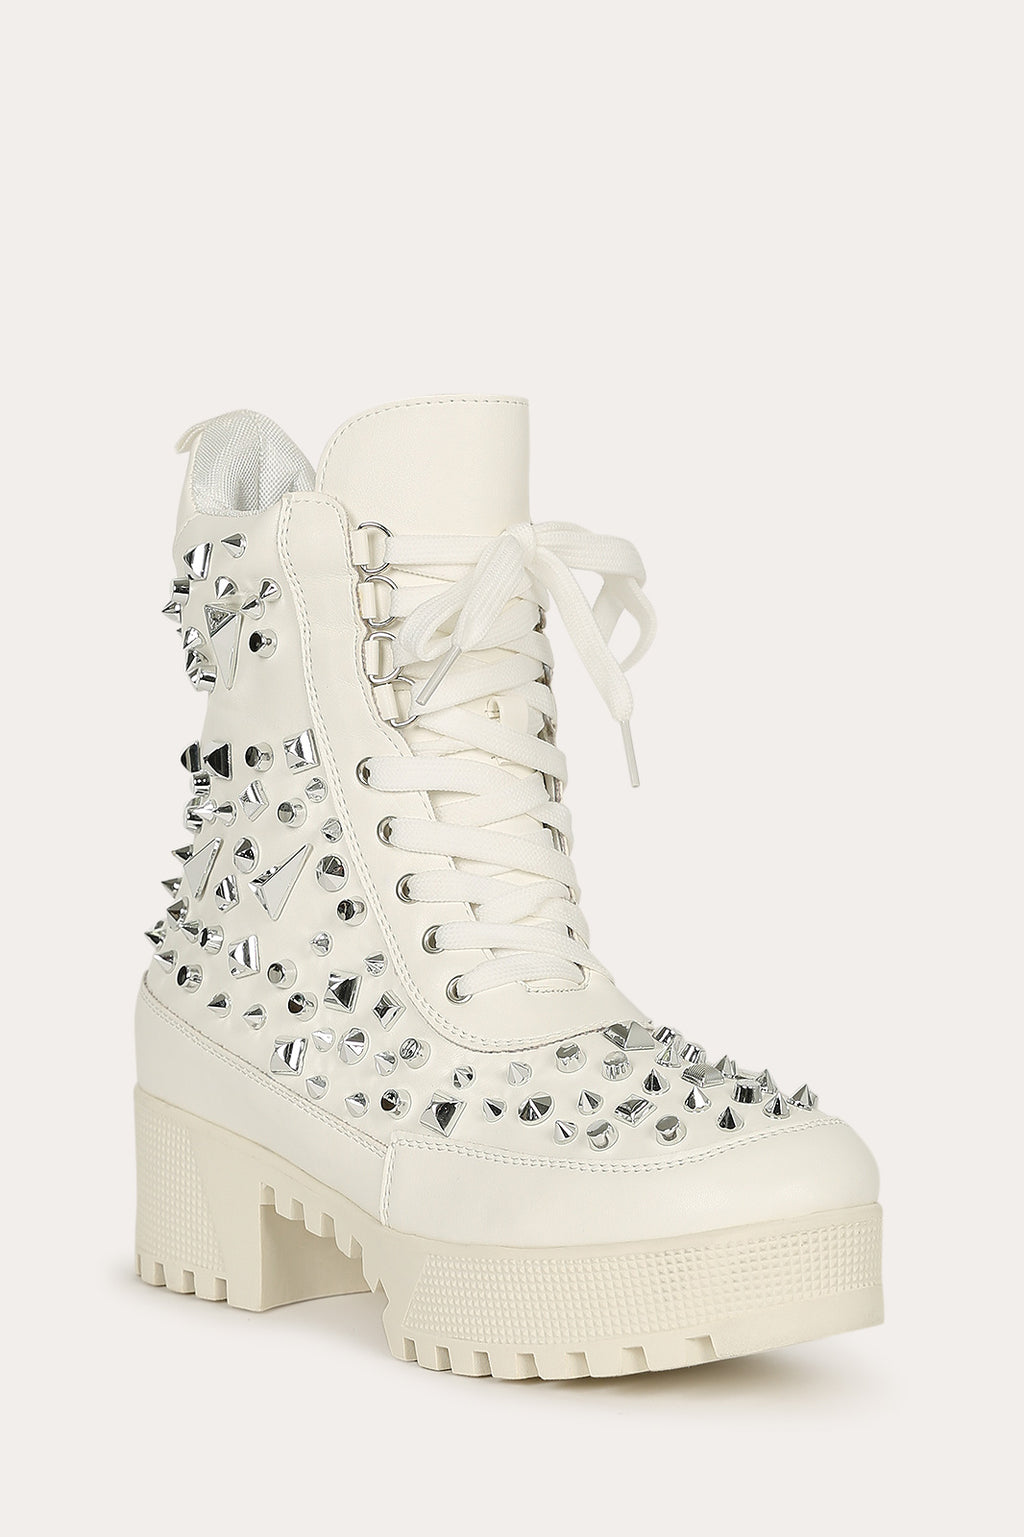 Cape Robbin Night Sky White Studded Combat Boot